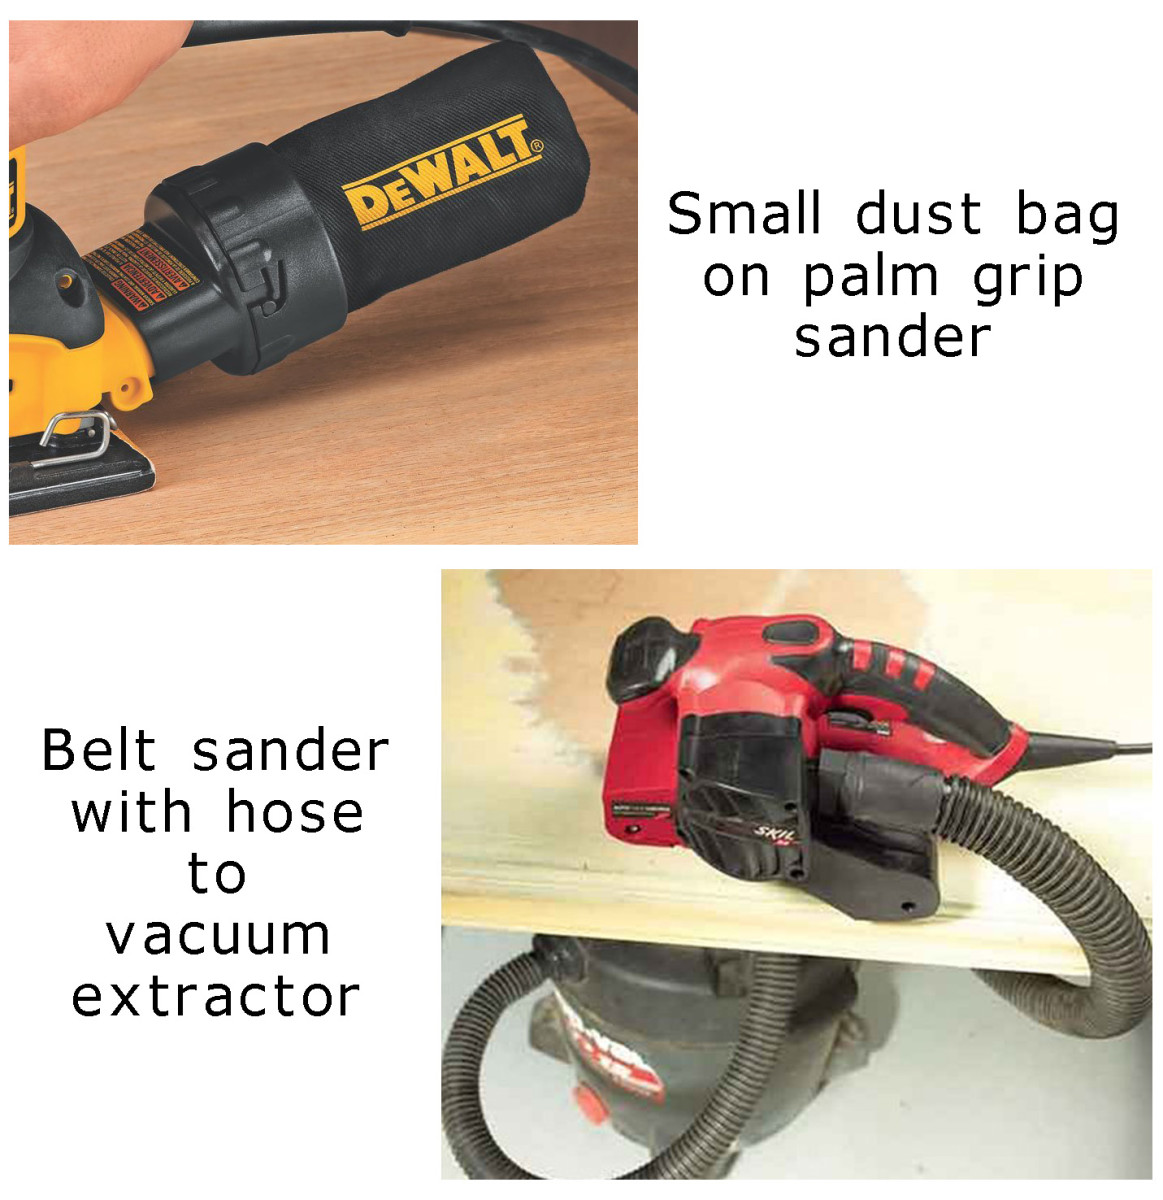 Dust extraction for power sanders.